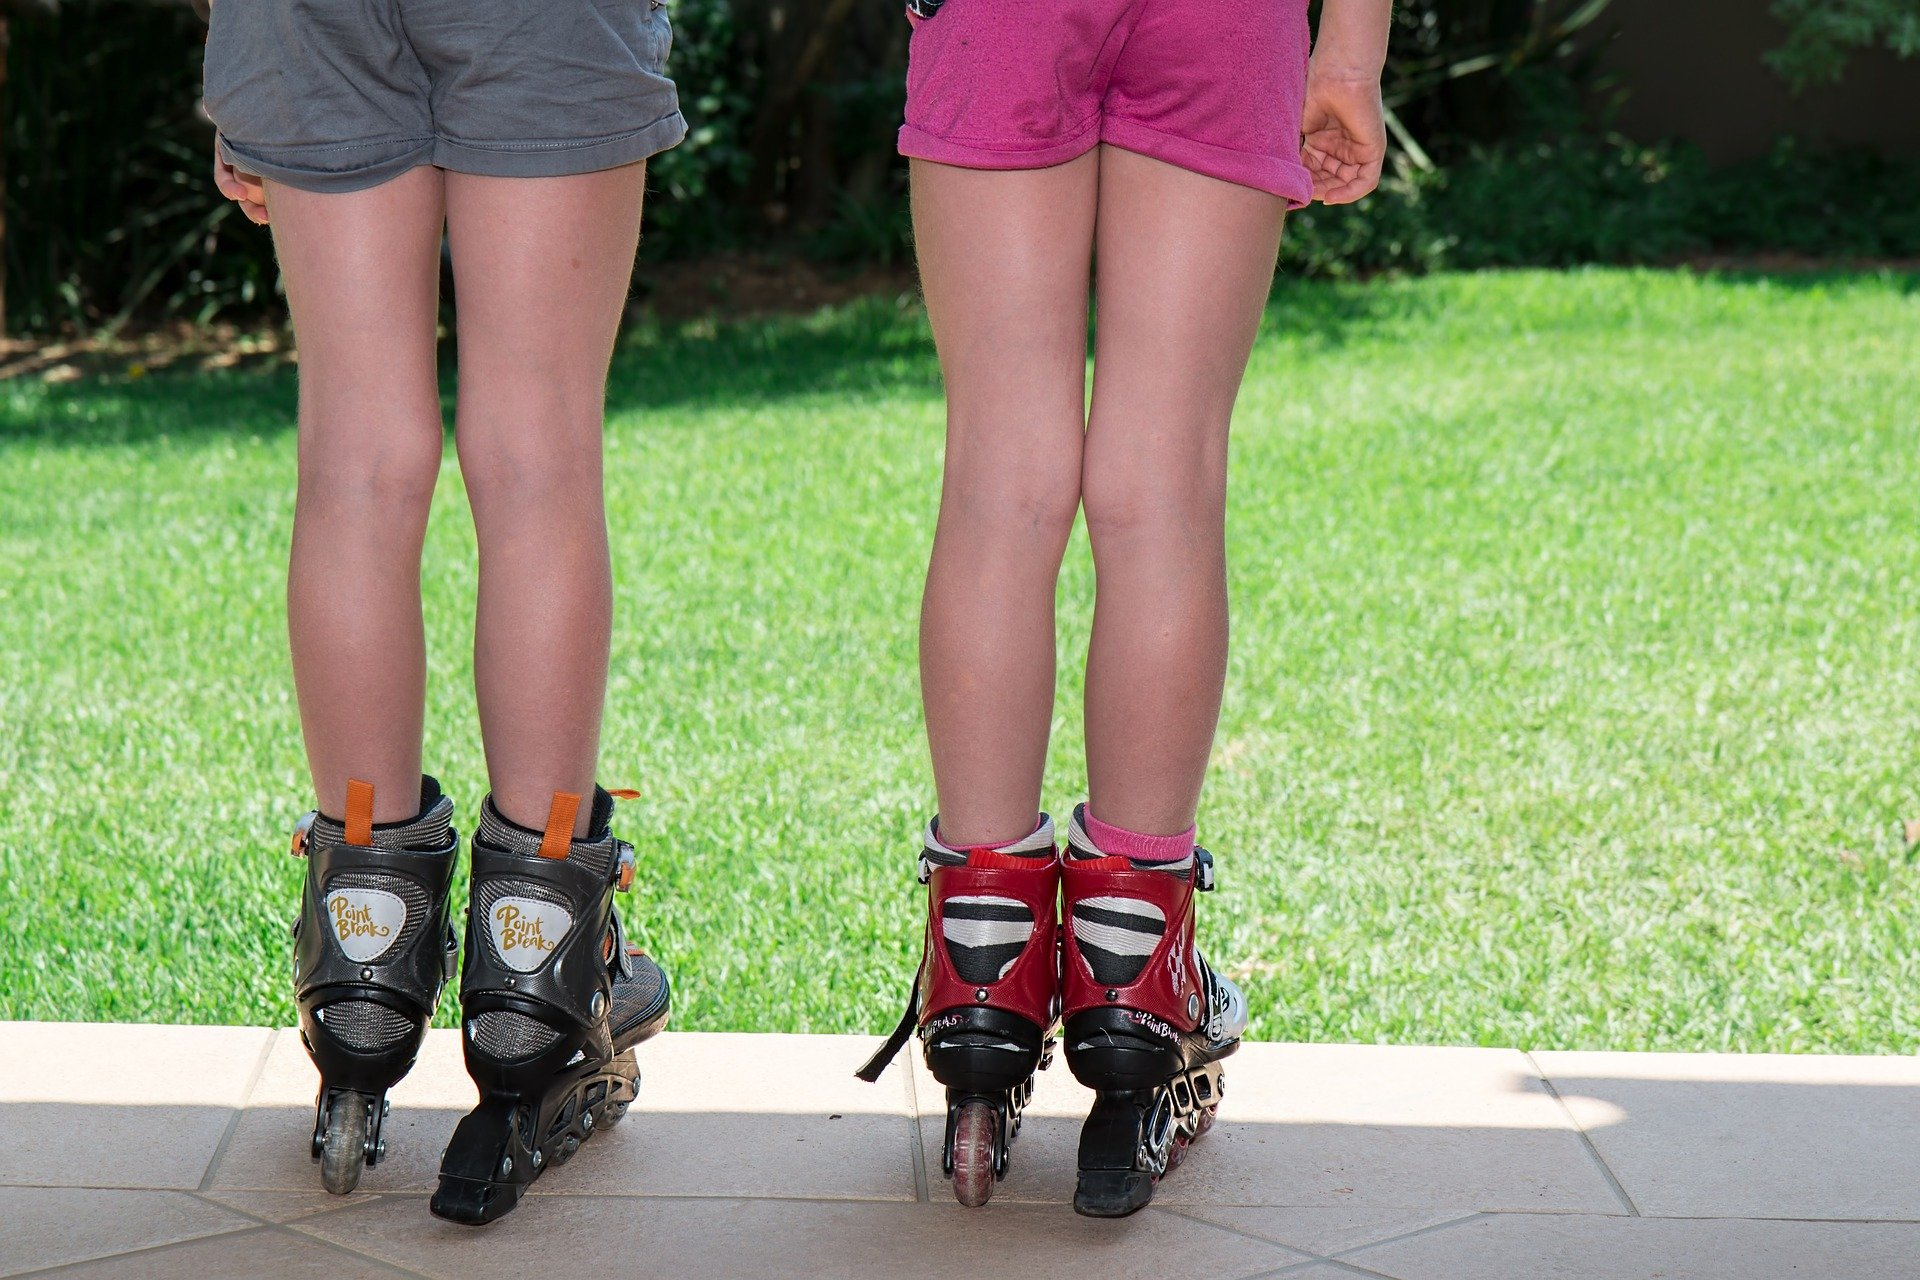 A story of roller blades, missing teeth, and lies.